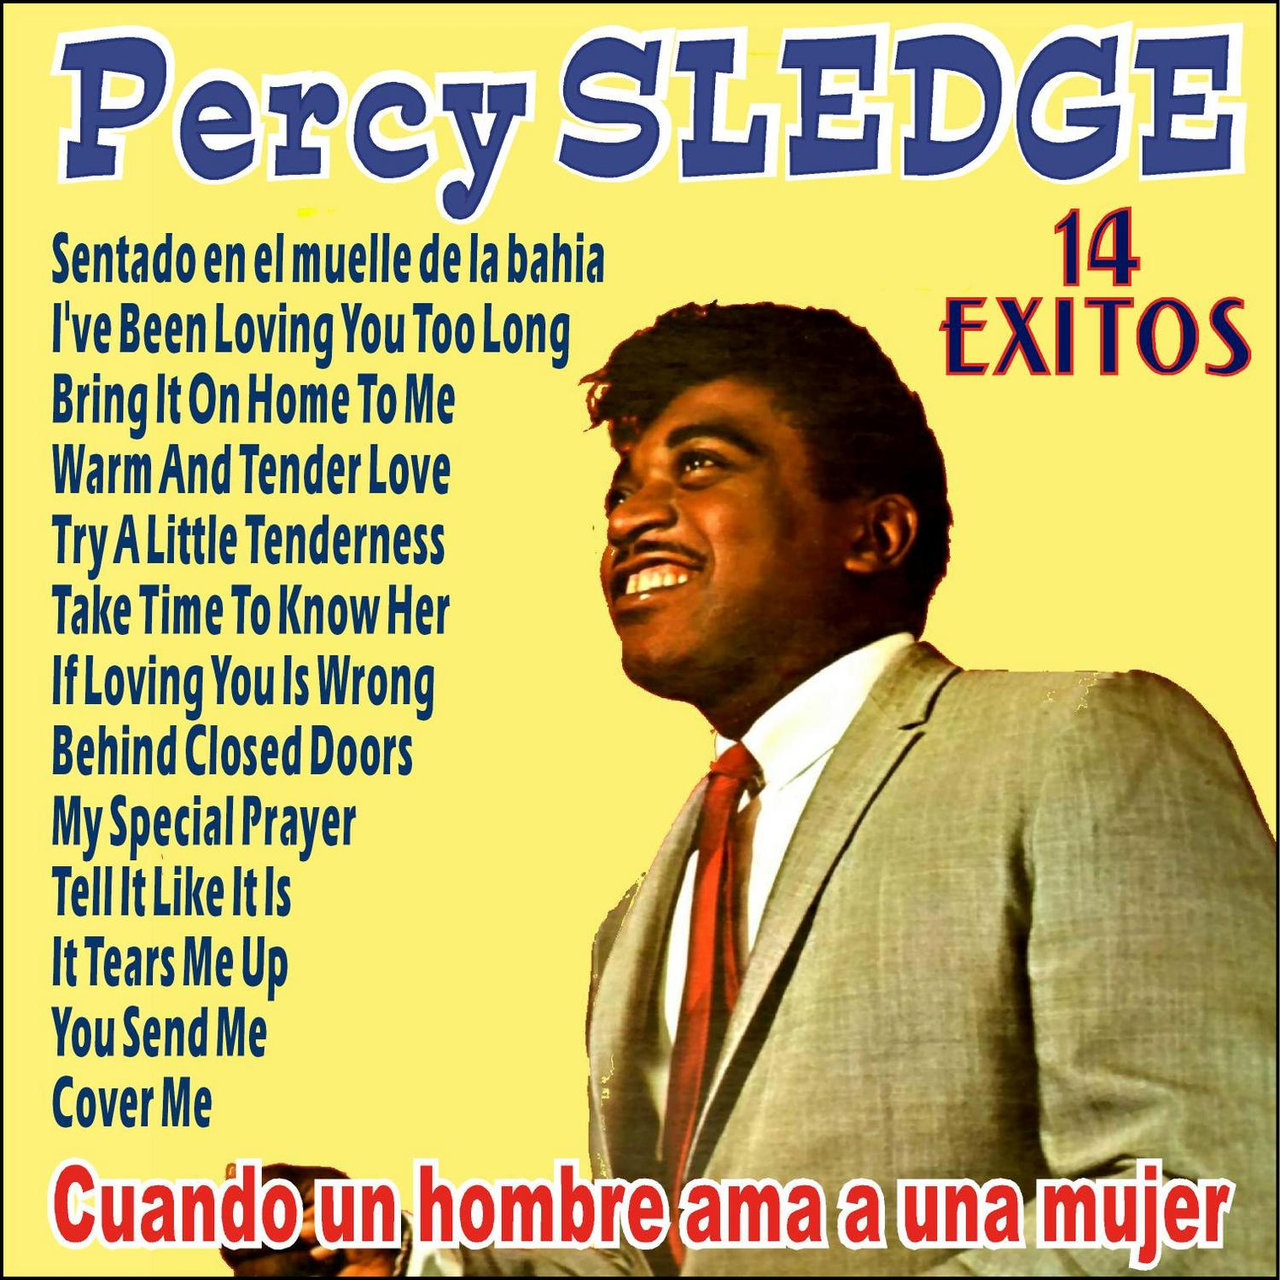 Percy Sledge - My Special Prayer / When A Man Loves A Woman